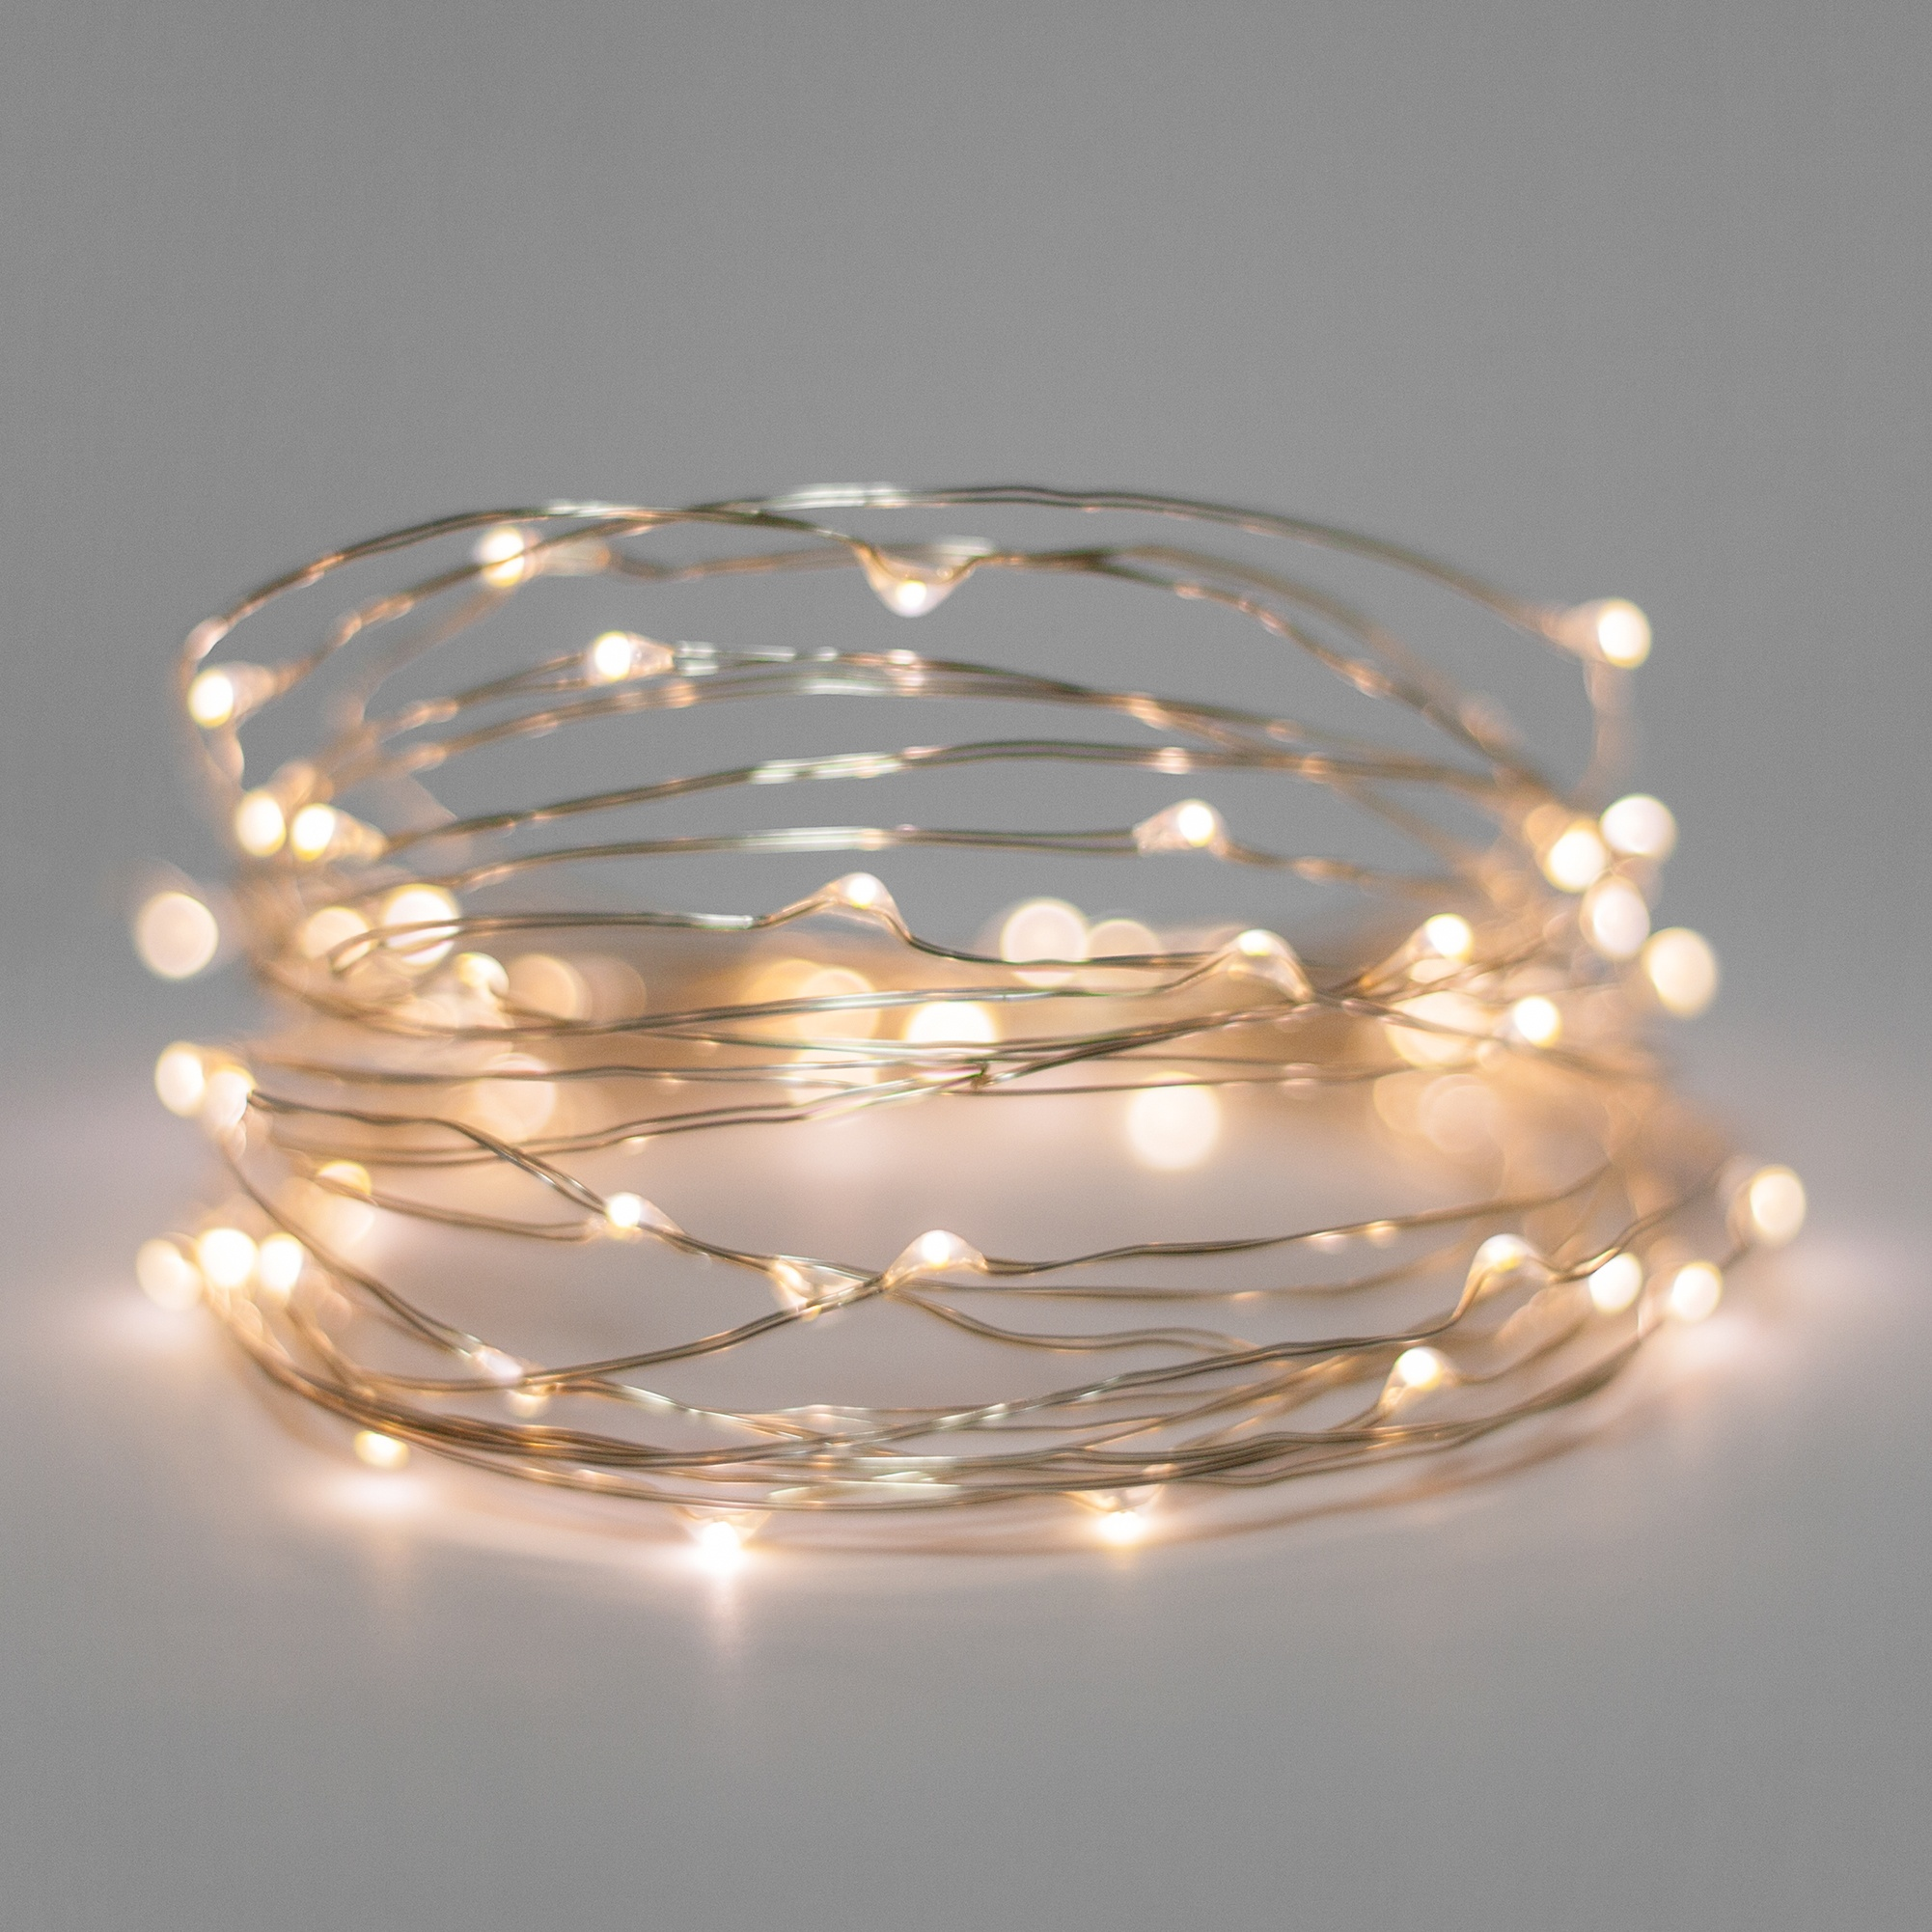 Battery Operated Lights - 60 Warm White Battery Operated LED Fairy Lights, Silver Wire